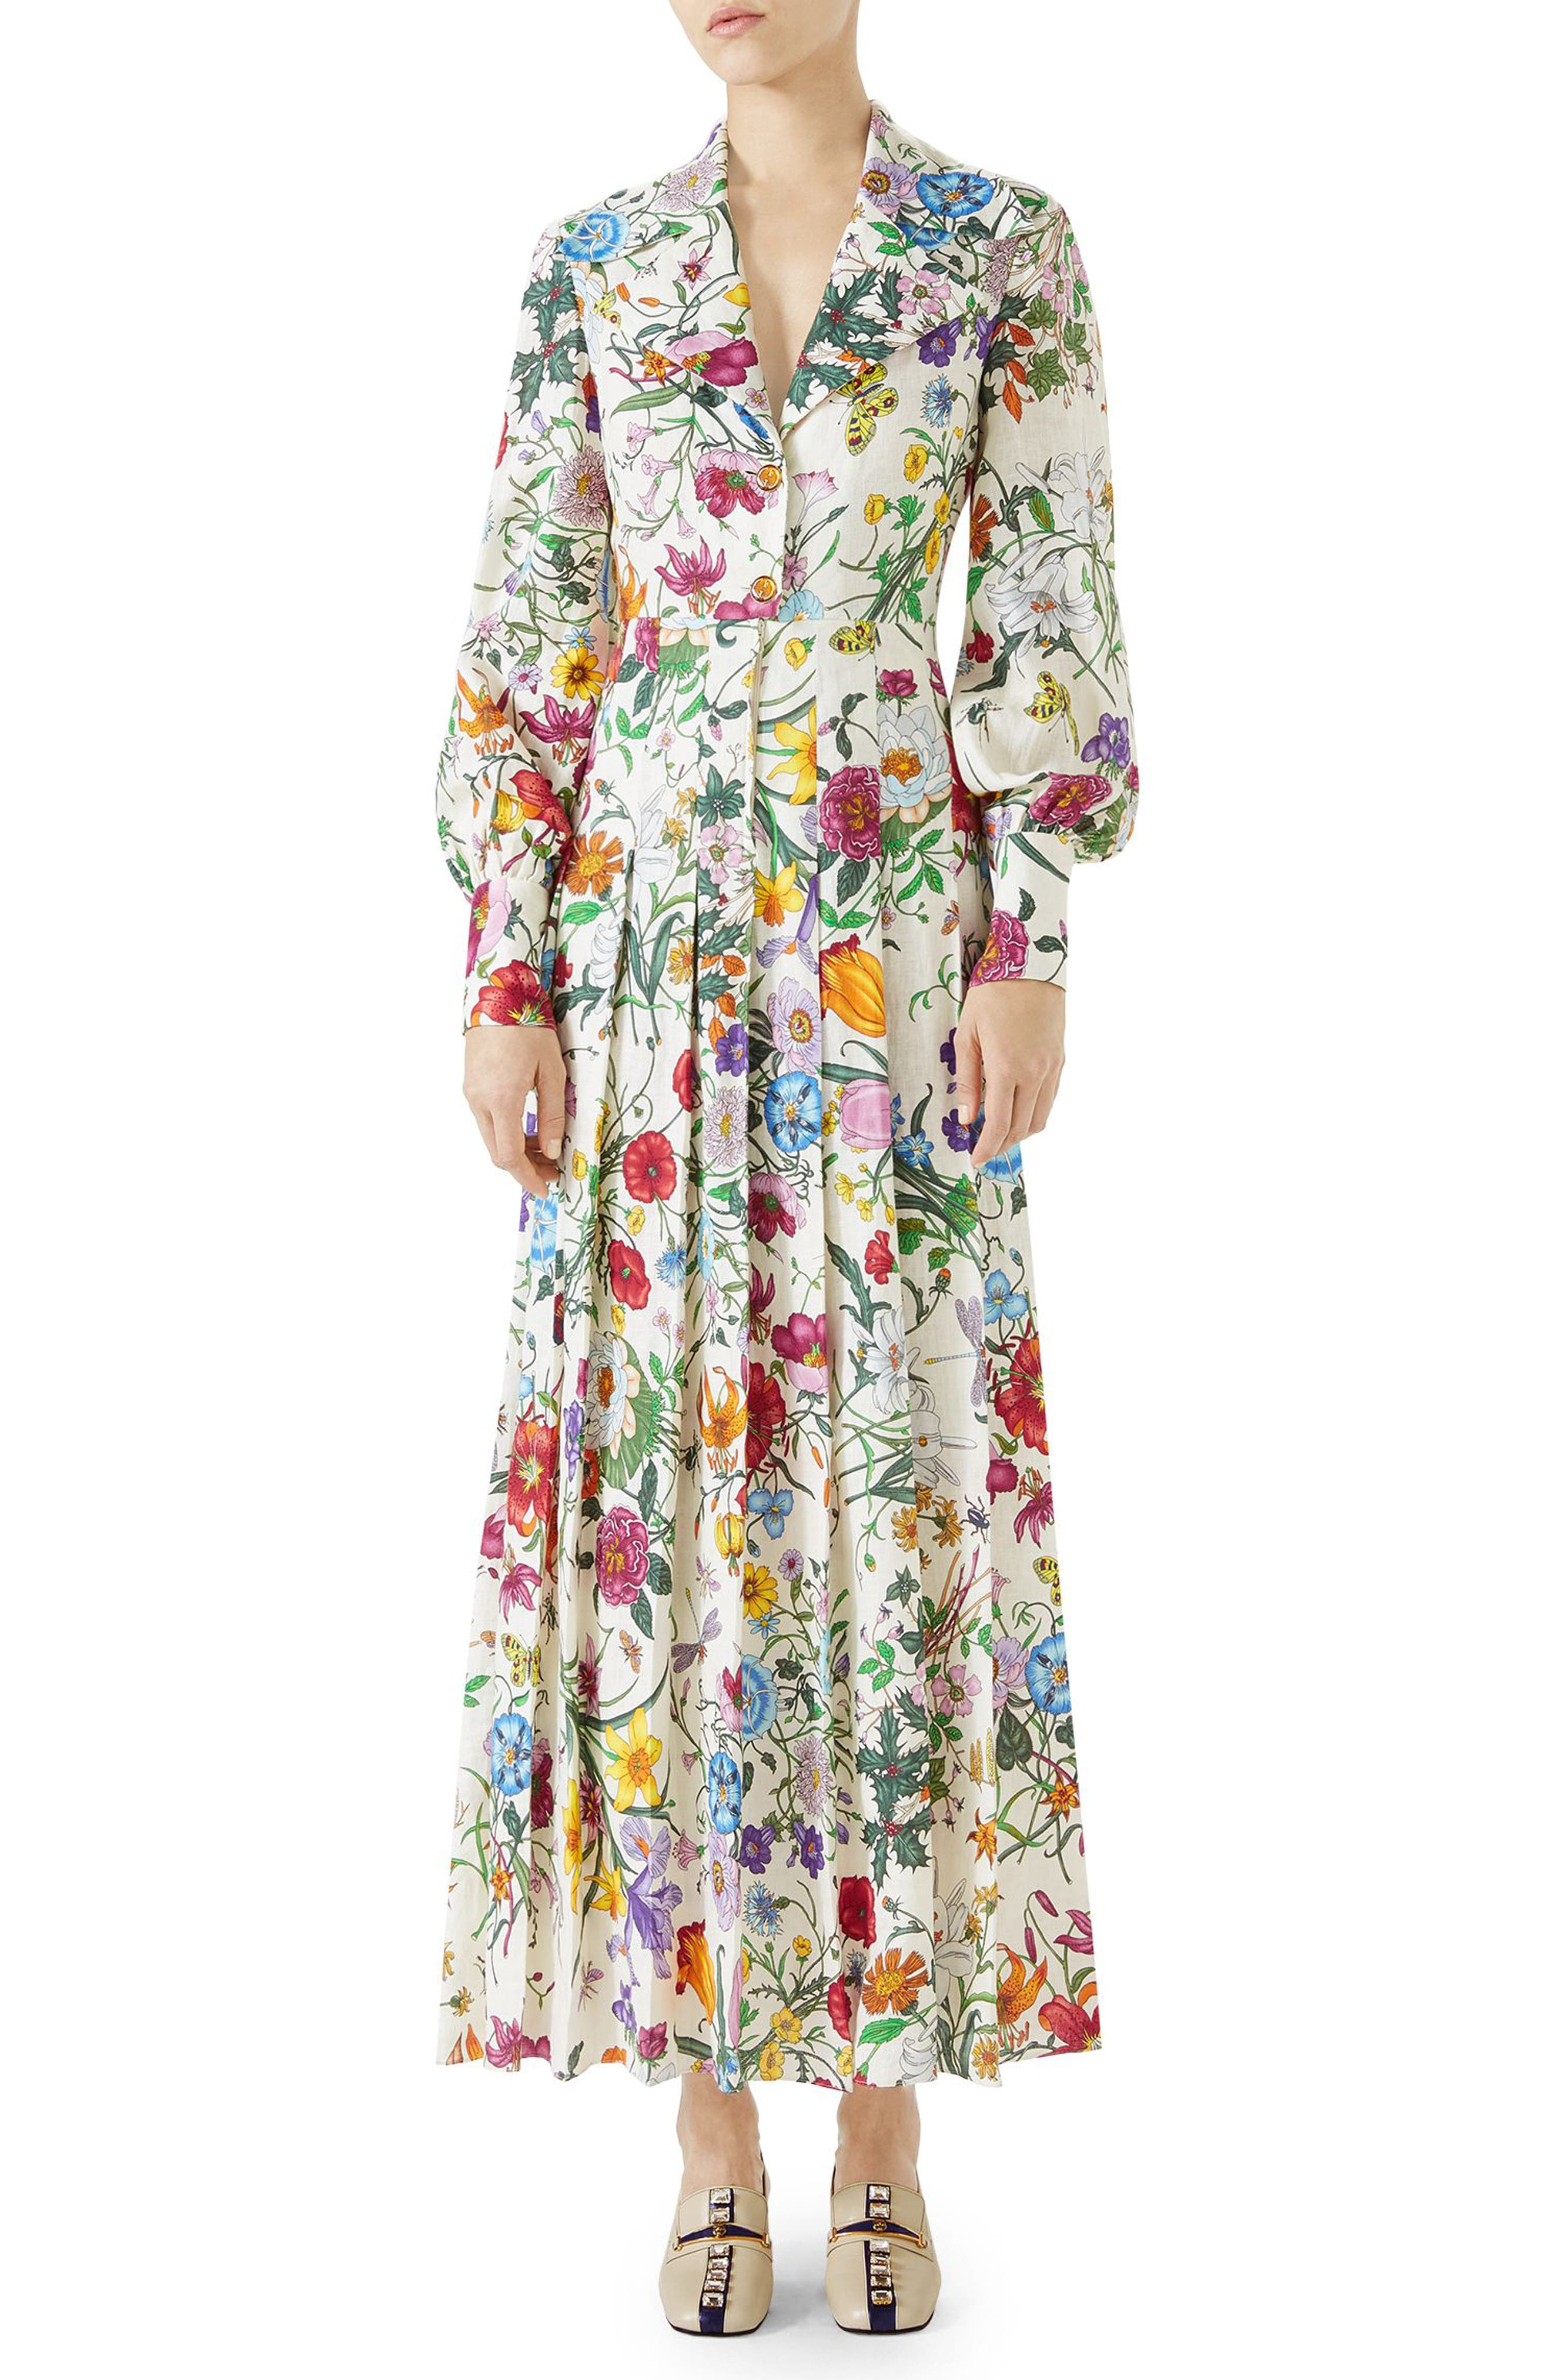 Puff Sleeve Pleated Silk Dress,                         Main,                         color, Ivory/ Multicolor Print